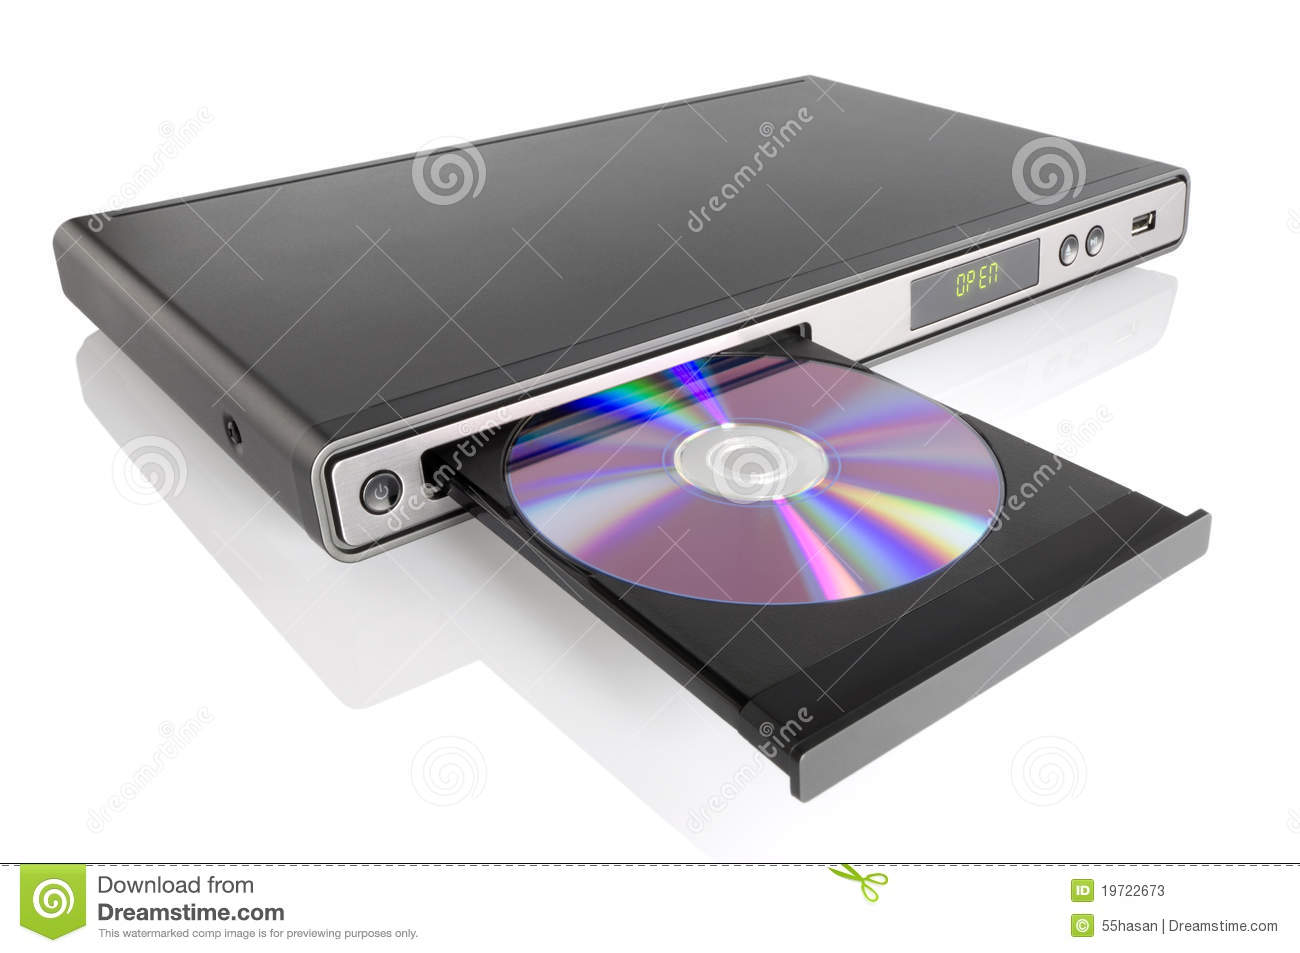 Watch additionally Spv 2750 Hello Kitty besides 5843371 further 230749822565 moreover Unidad de disco duro. on portable dvd cd player